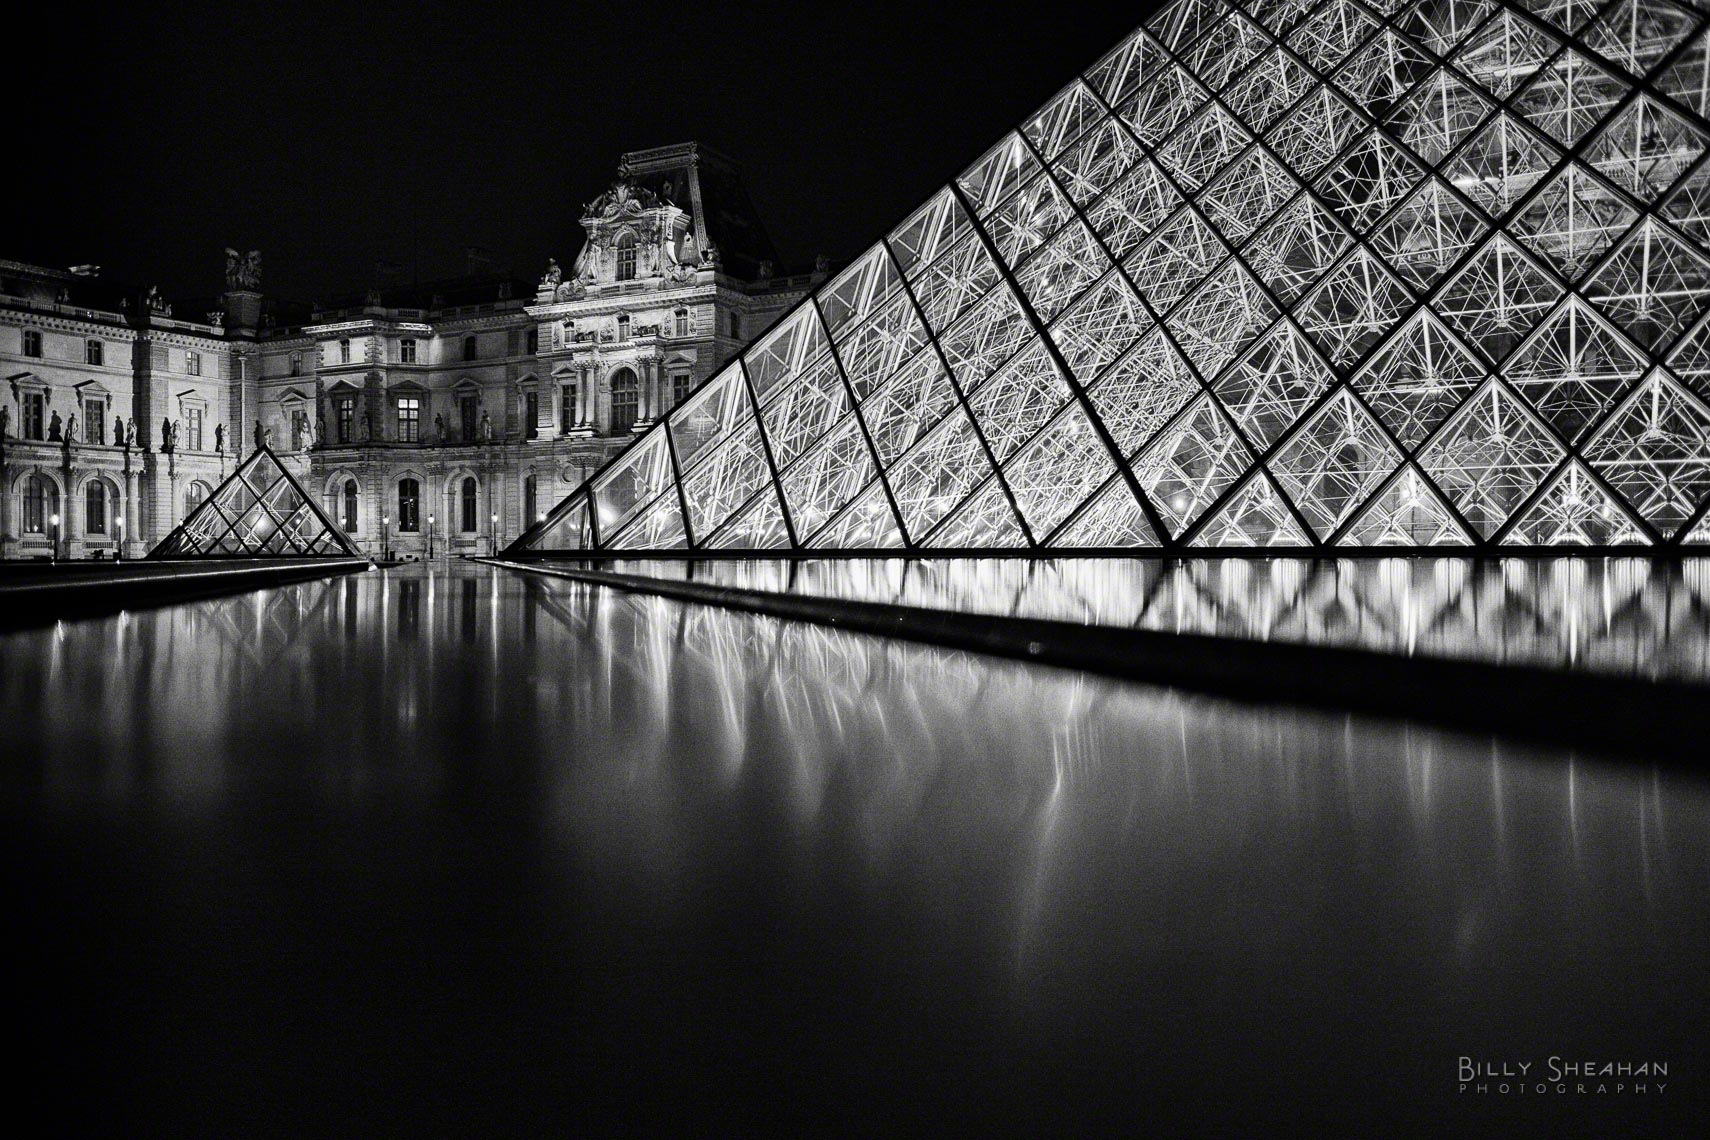 Musée_du_Louvre_Palace_Reflection_Paris2008_25Apr2008_0810_BW_D.jpg